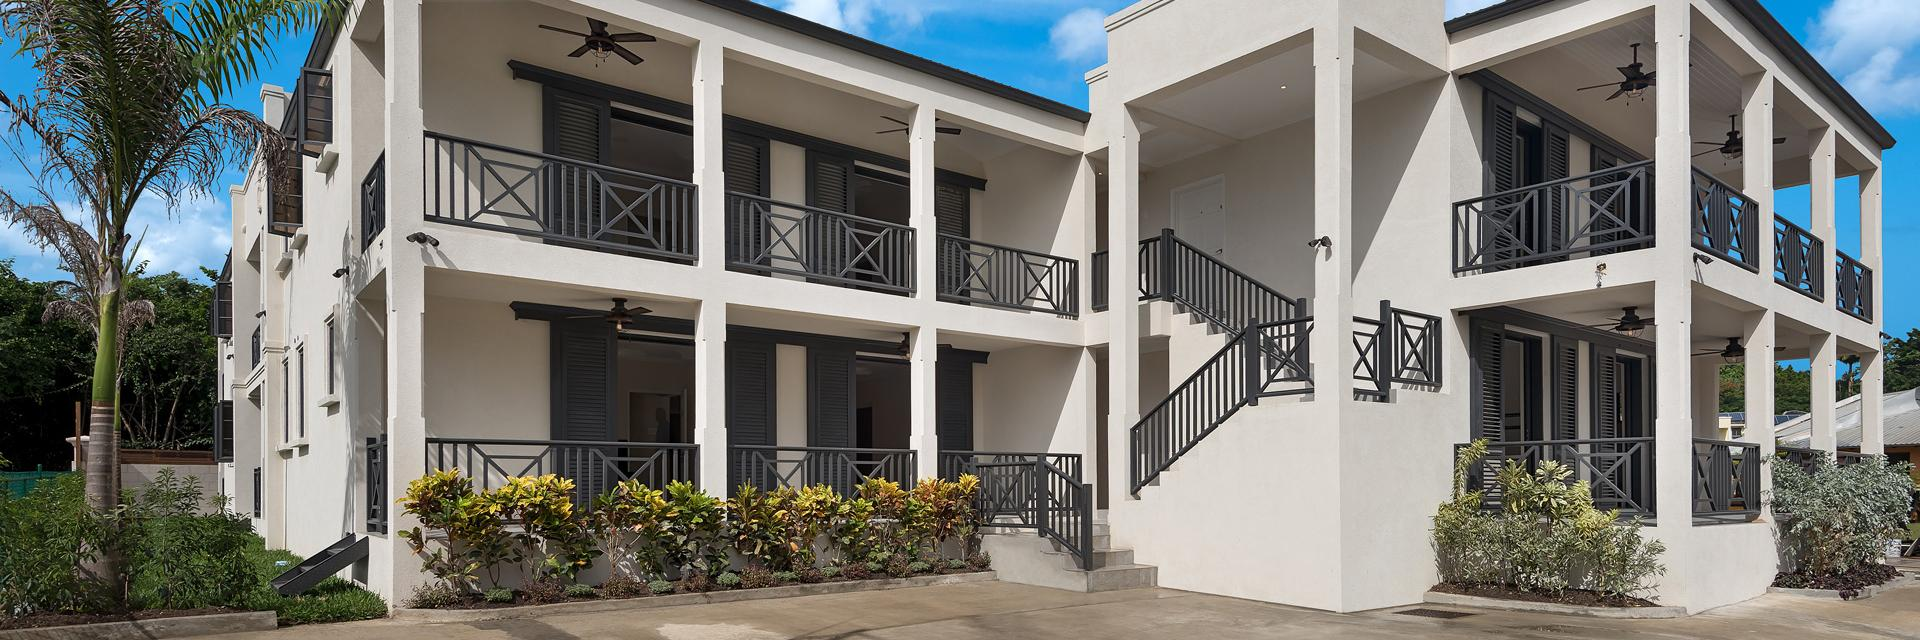 Clarence House Barbados